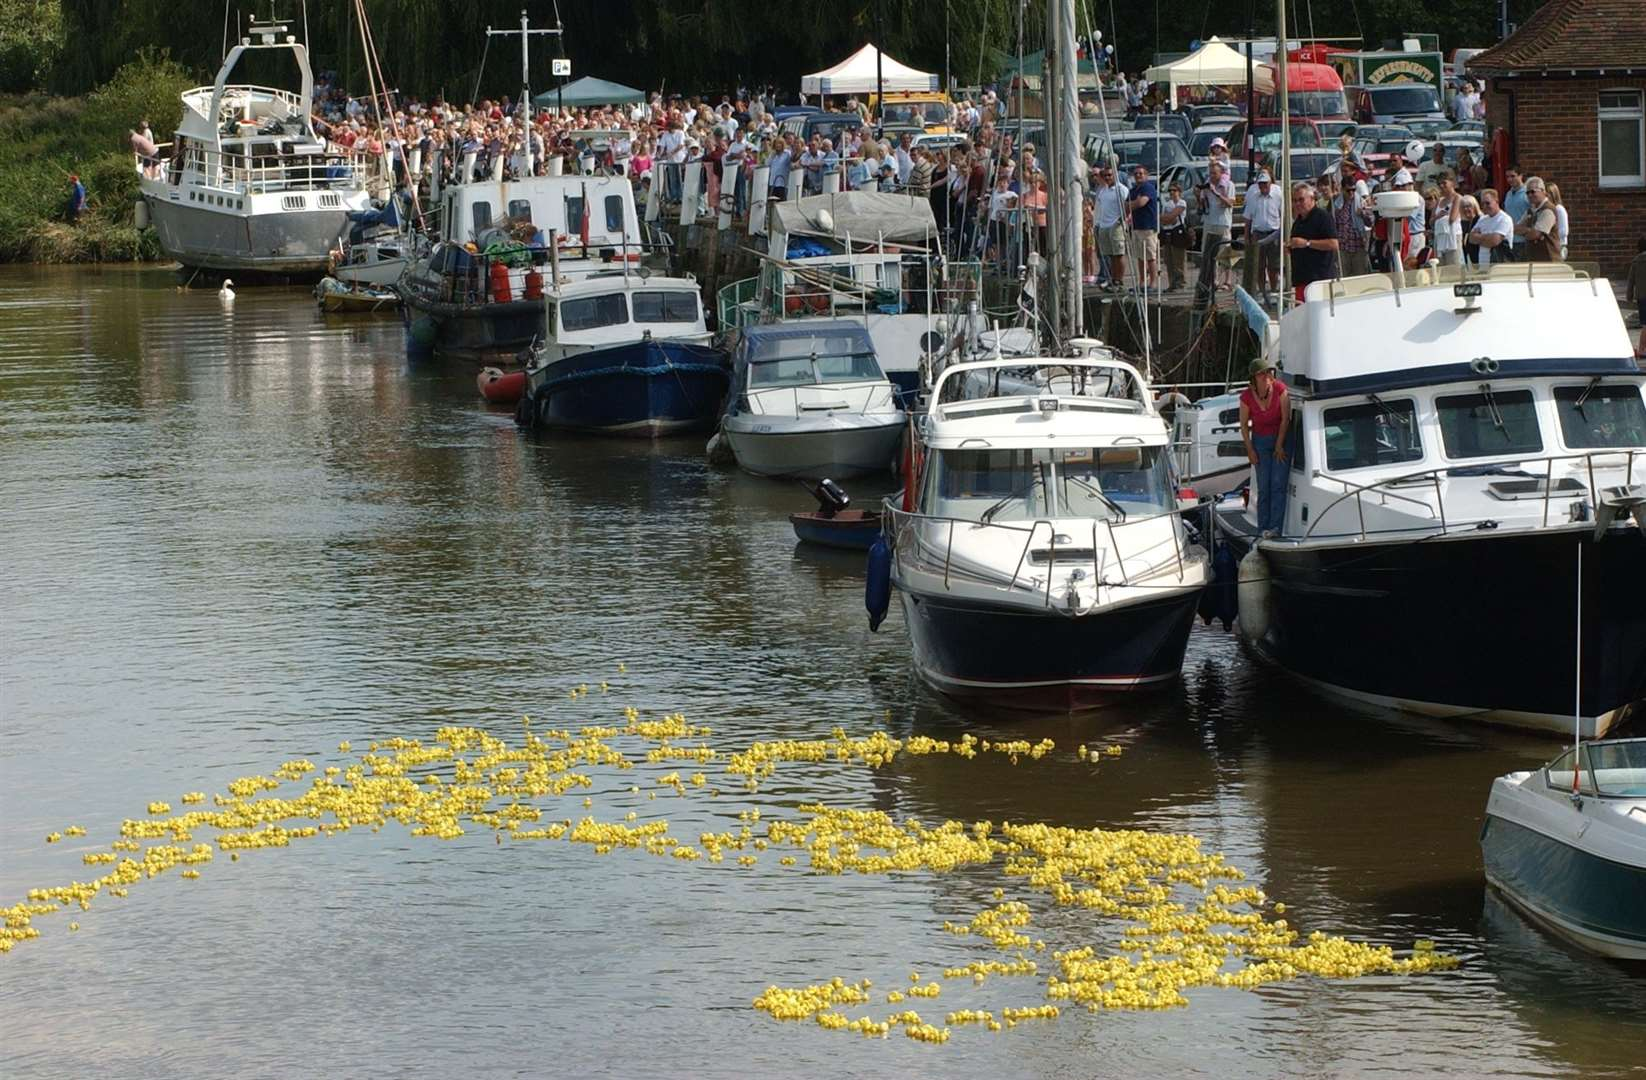 The annual Duck Race in Sandwich was postponed this year Picture: Terry Scott